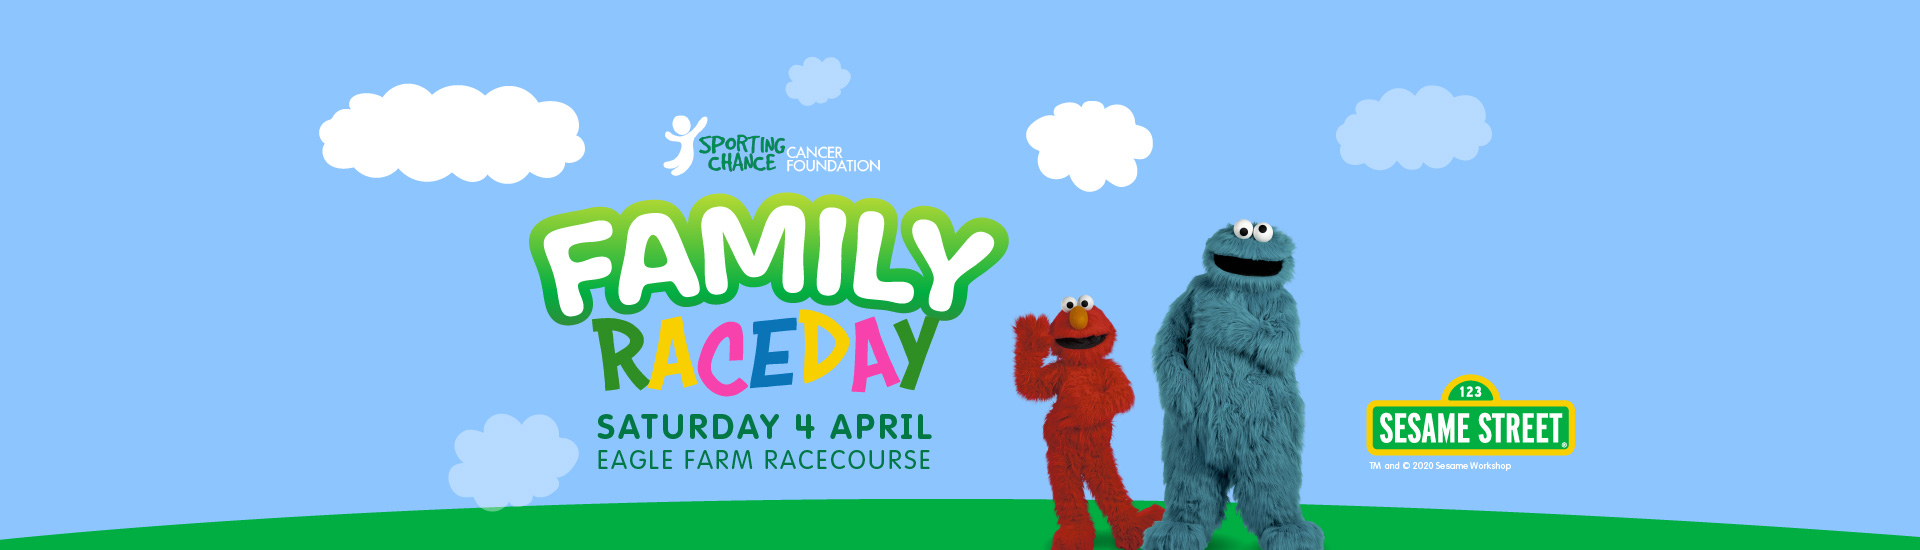 Sporting Chance Family Raceday | Brisbane Racing Club